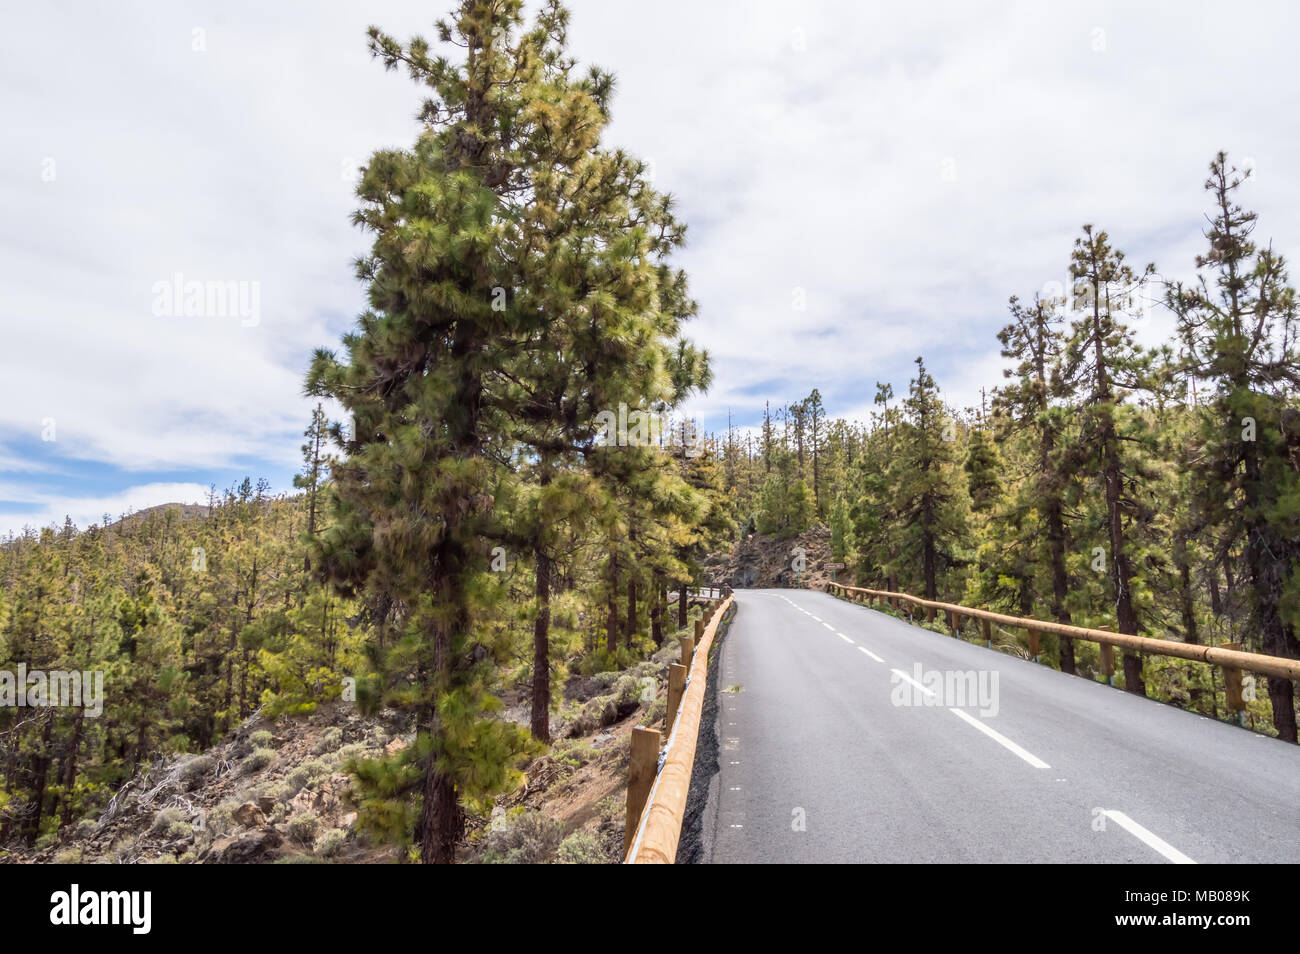 Road in tarmac in the middle of a pine forest on the island of Tenerife in Spain - Stock Image